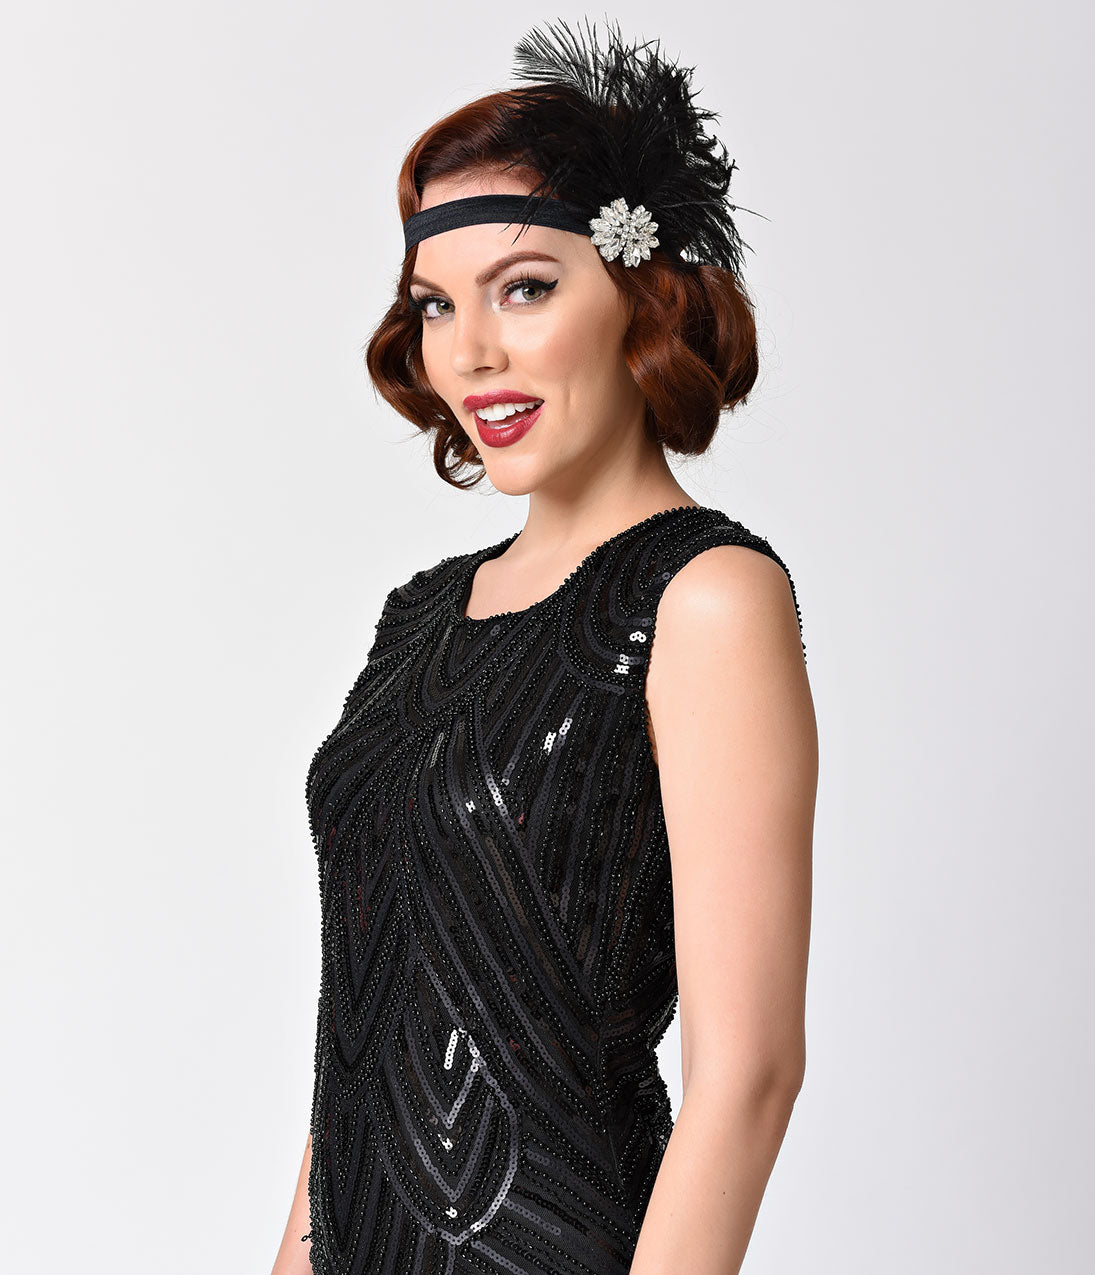 1920s Headband, Headpiece & Hair Accessory Styles Black Feather  Silver Crystal Olive Headband $42.00 AT vintagedancer.com